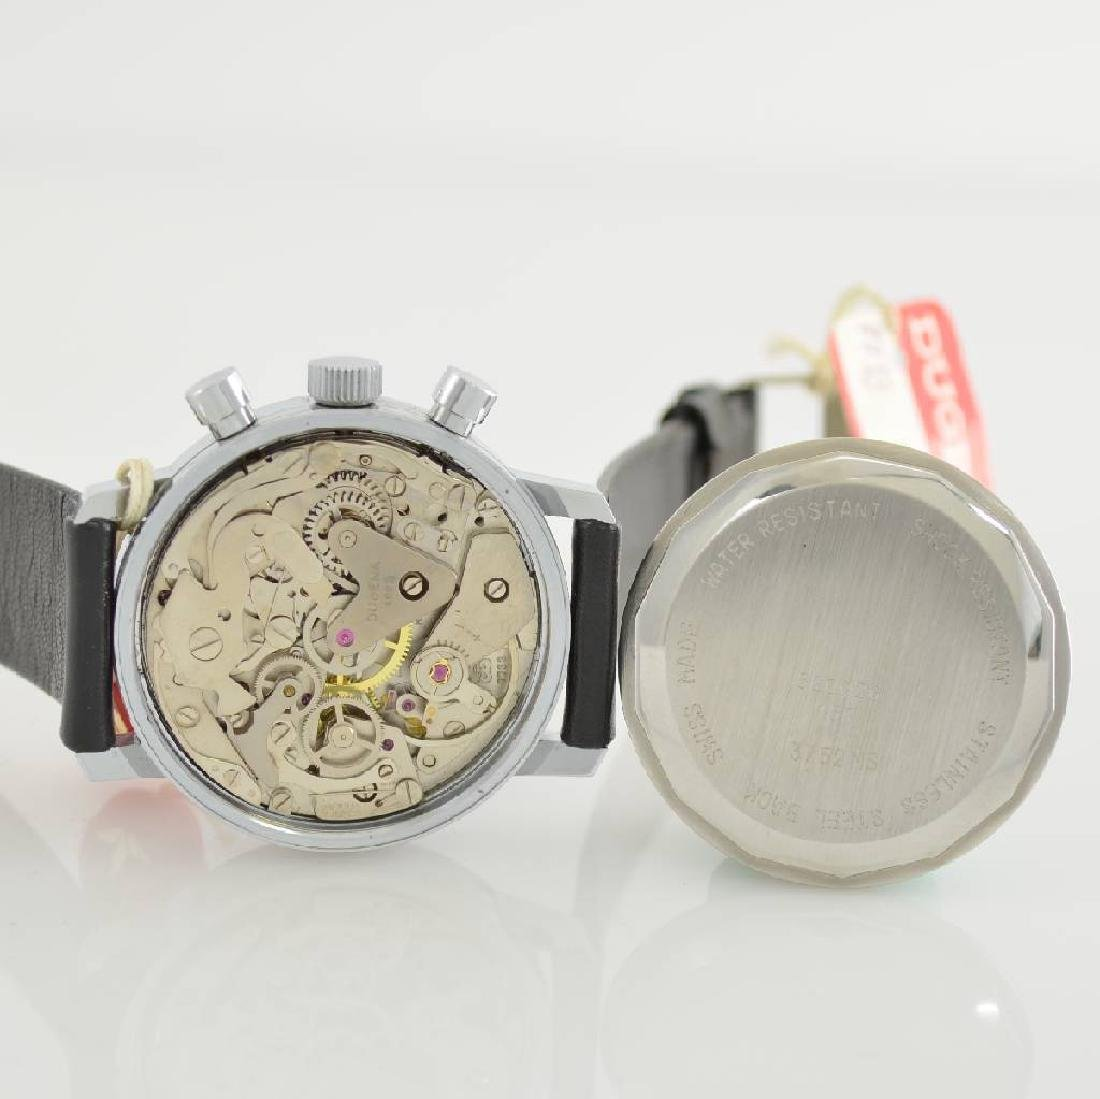 DUGENA unworn gents wristwatch with chronograph - 7